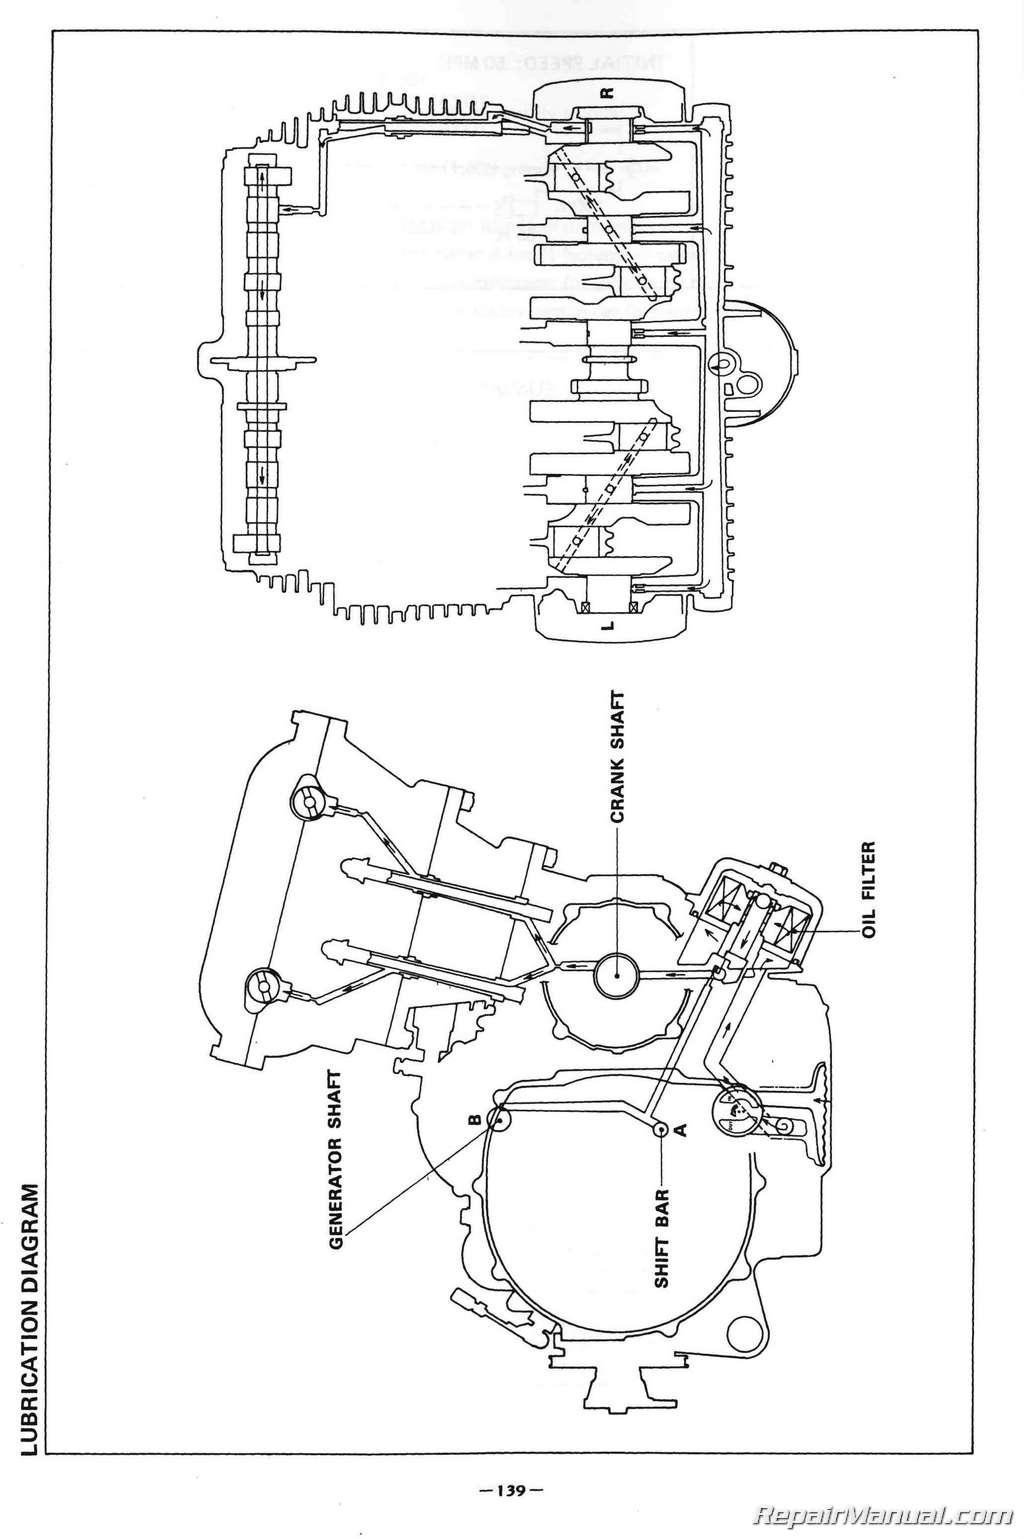 1980 1983 yamaha xj650 maxim motorcycle service manual repair 1980 1983 yamaha xj650 maxim service manual page 3